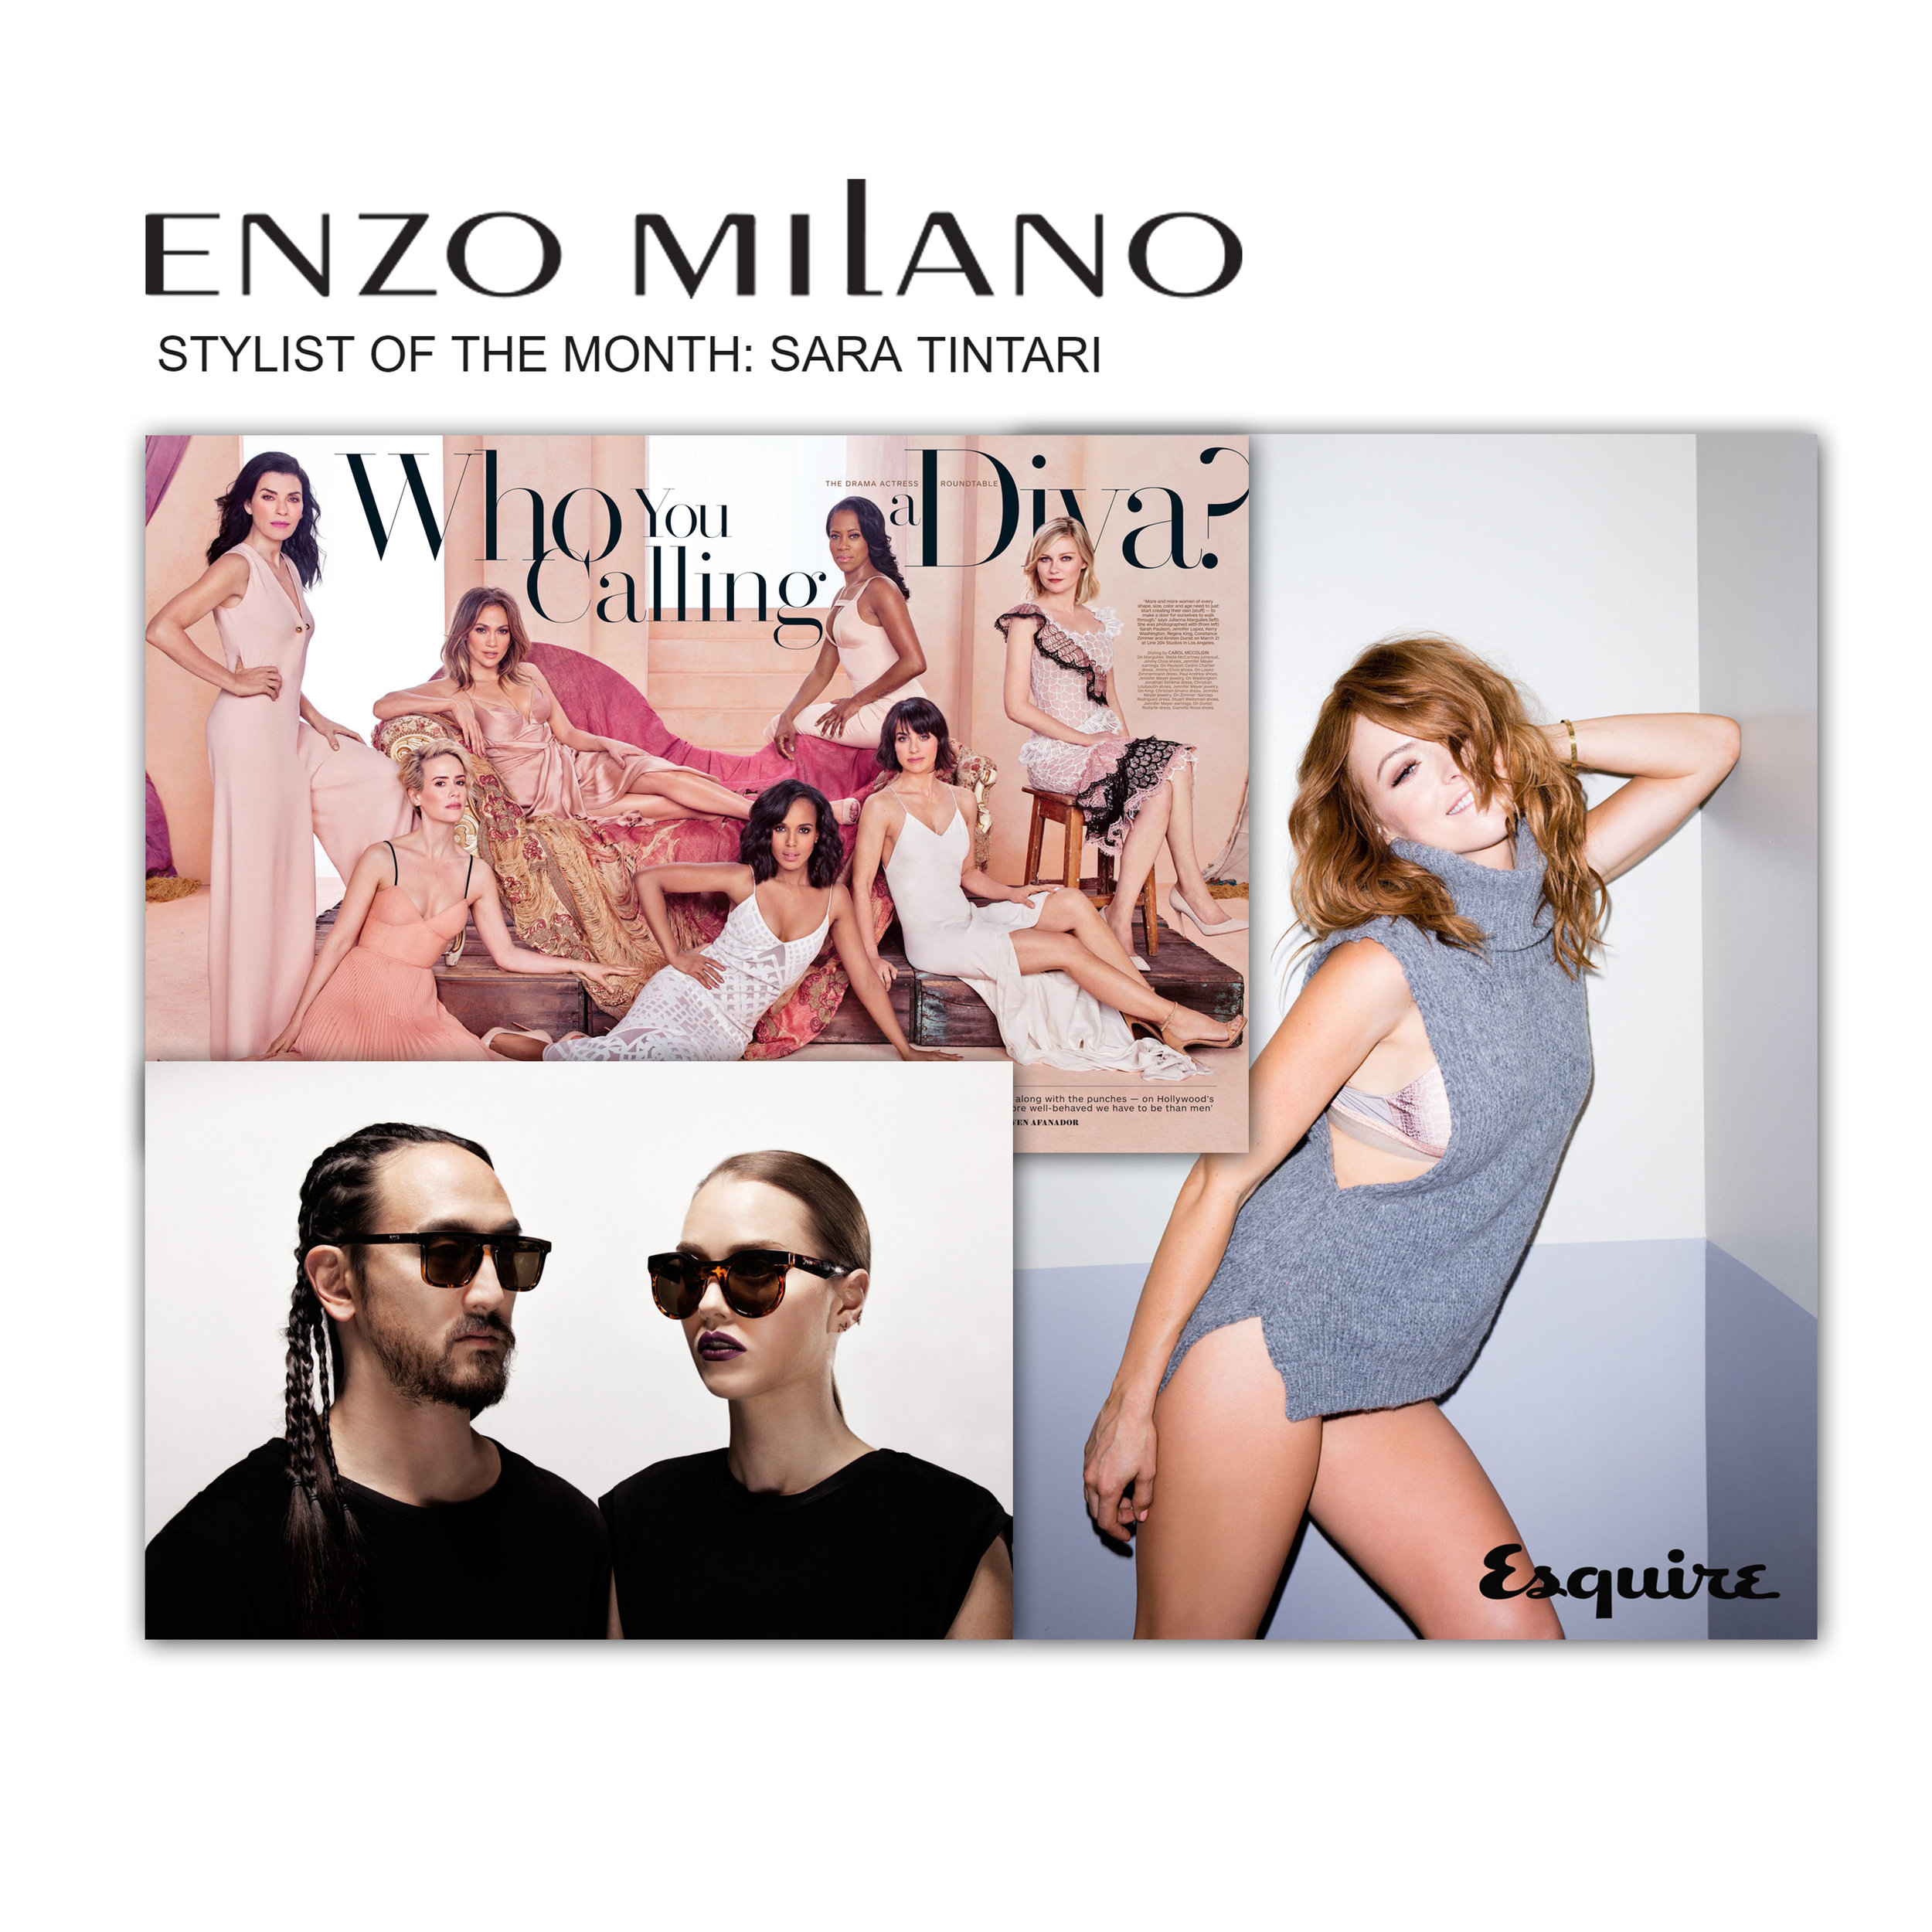 ENZO MILANO'S FEATURED STYLIST OF THE MONTH!